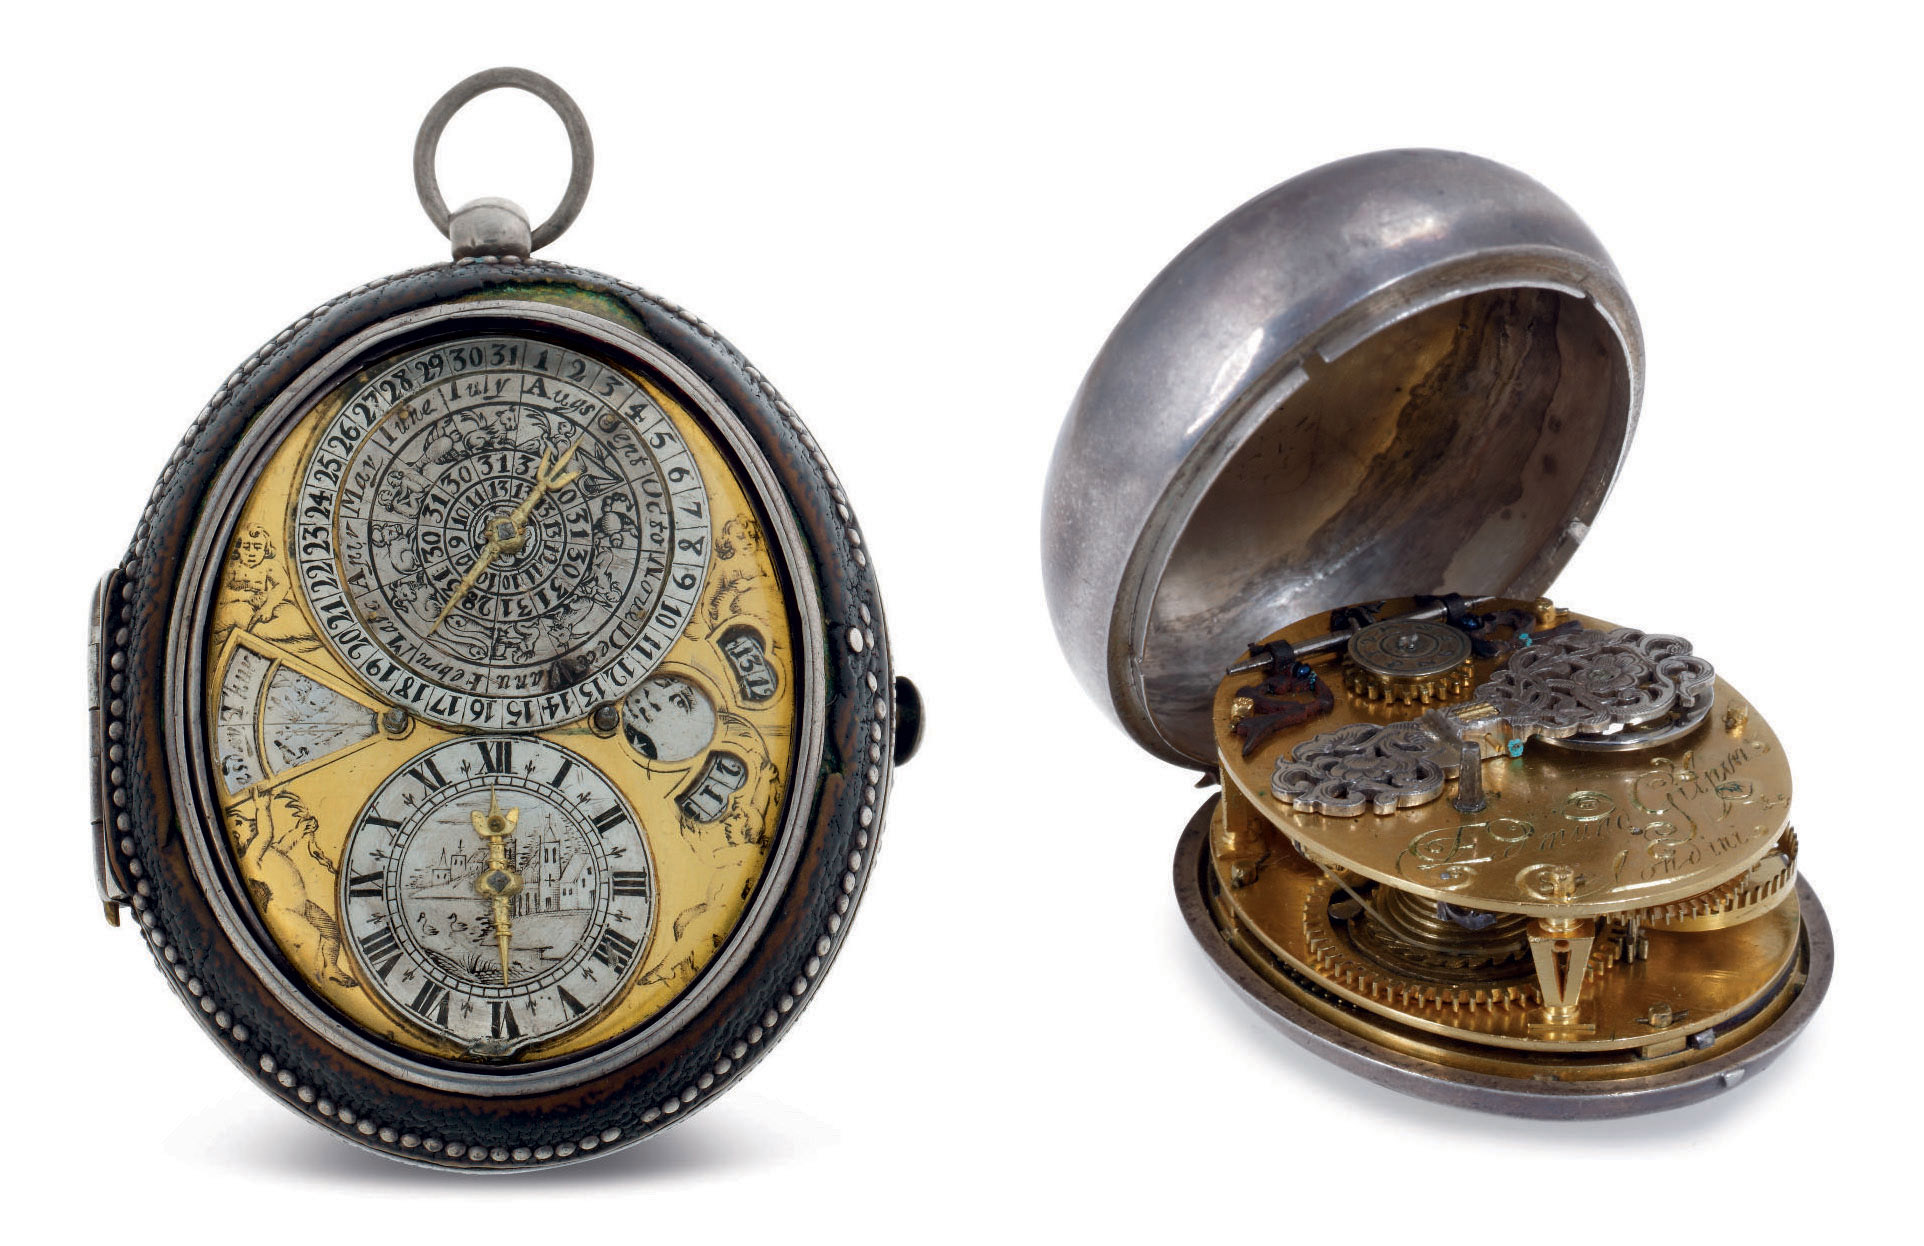 EDMUND GILPIN. A SILVER OVAL ASTRONOMICAL PRE-HAIRSPRING VERGE WATCH